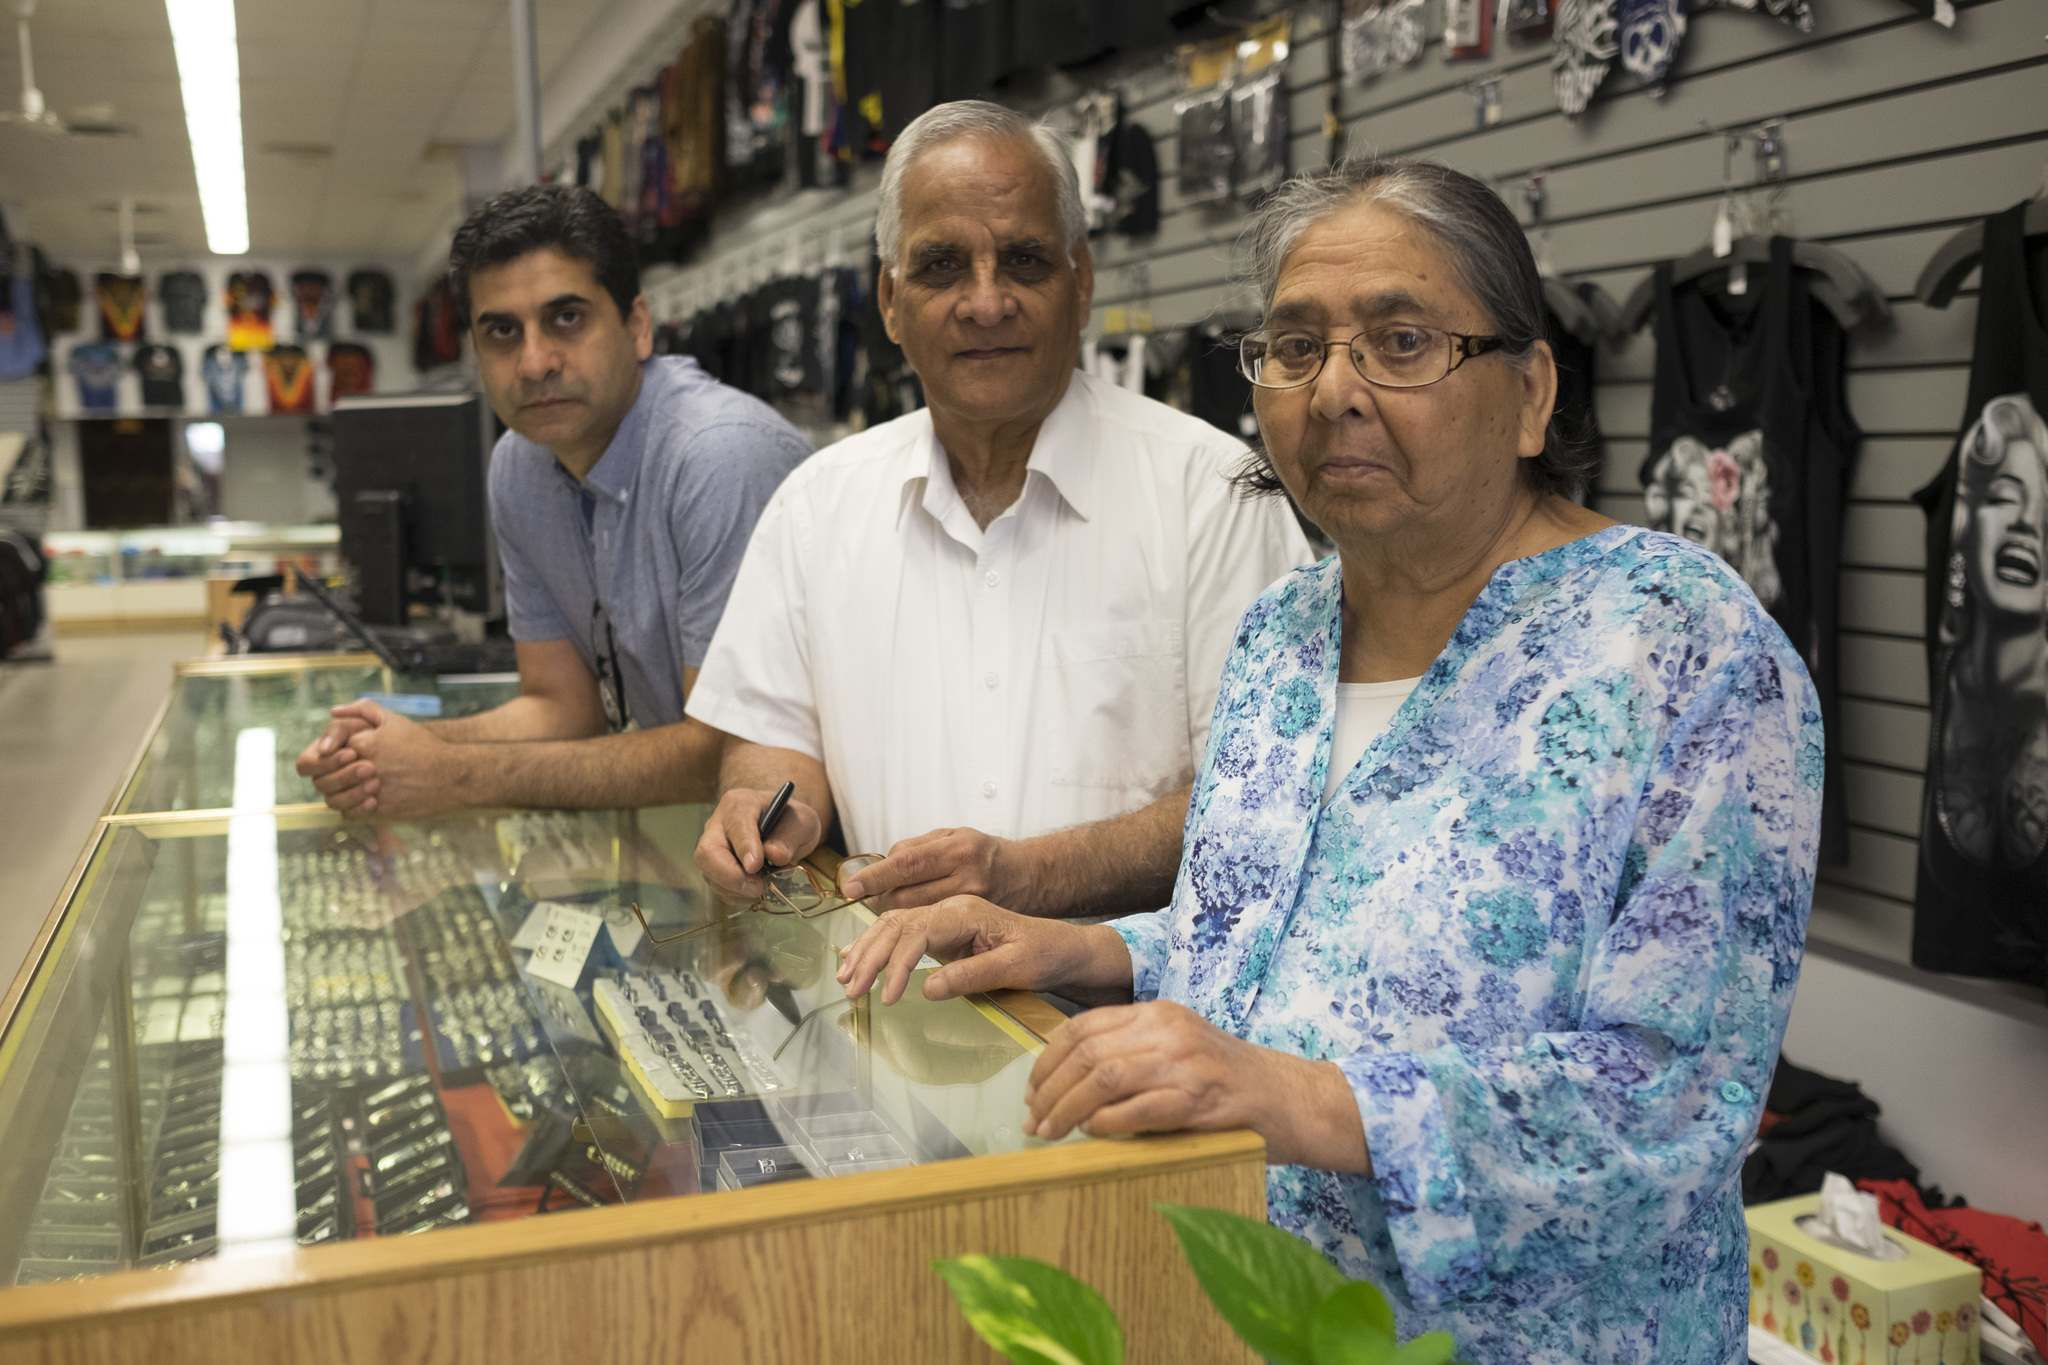 PHOTOS BY ZACHARY PRONG / WINNIPEG FREE PRESS</p><p>Gurinder Nirula (left) with his parents, Sartaj Nirula and Jasbir Nirula. The couple opened O Calcutta, a store that sells T-shirts and pop culture paraphernalia, 40 years ago.</p></p>